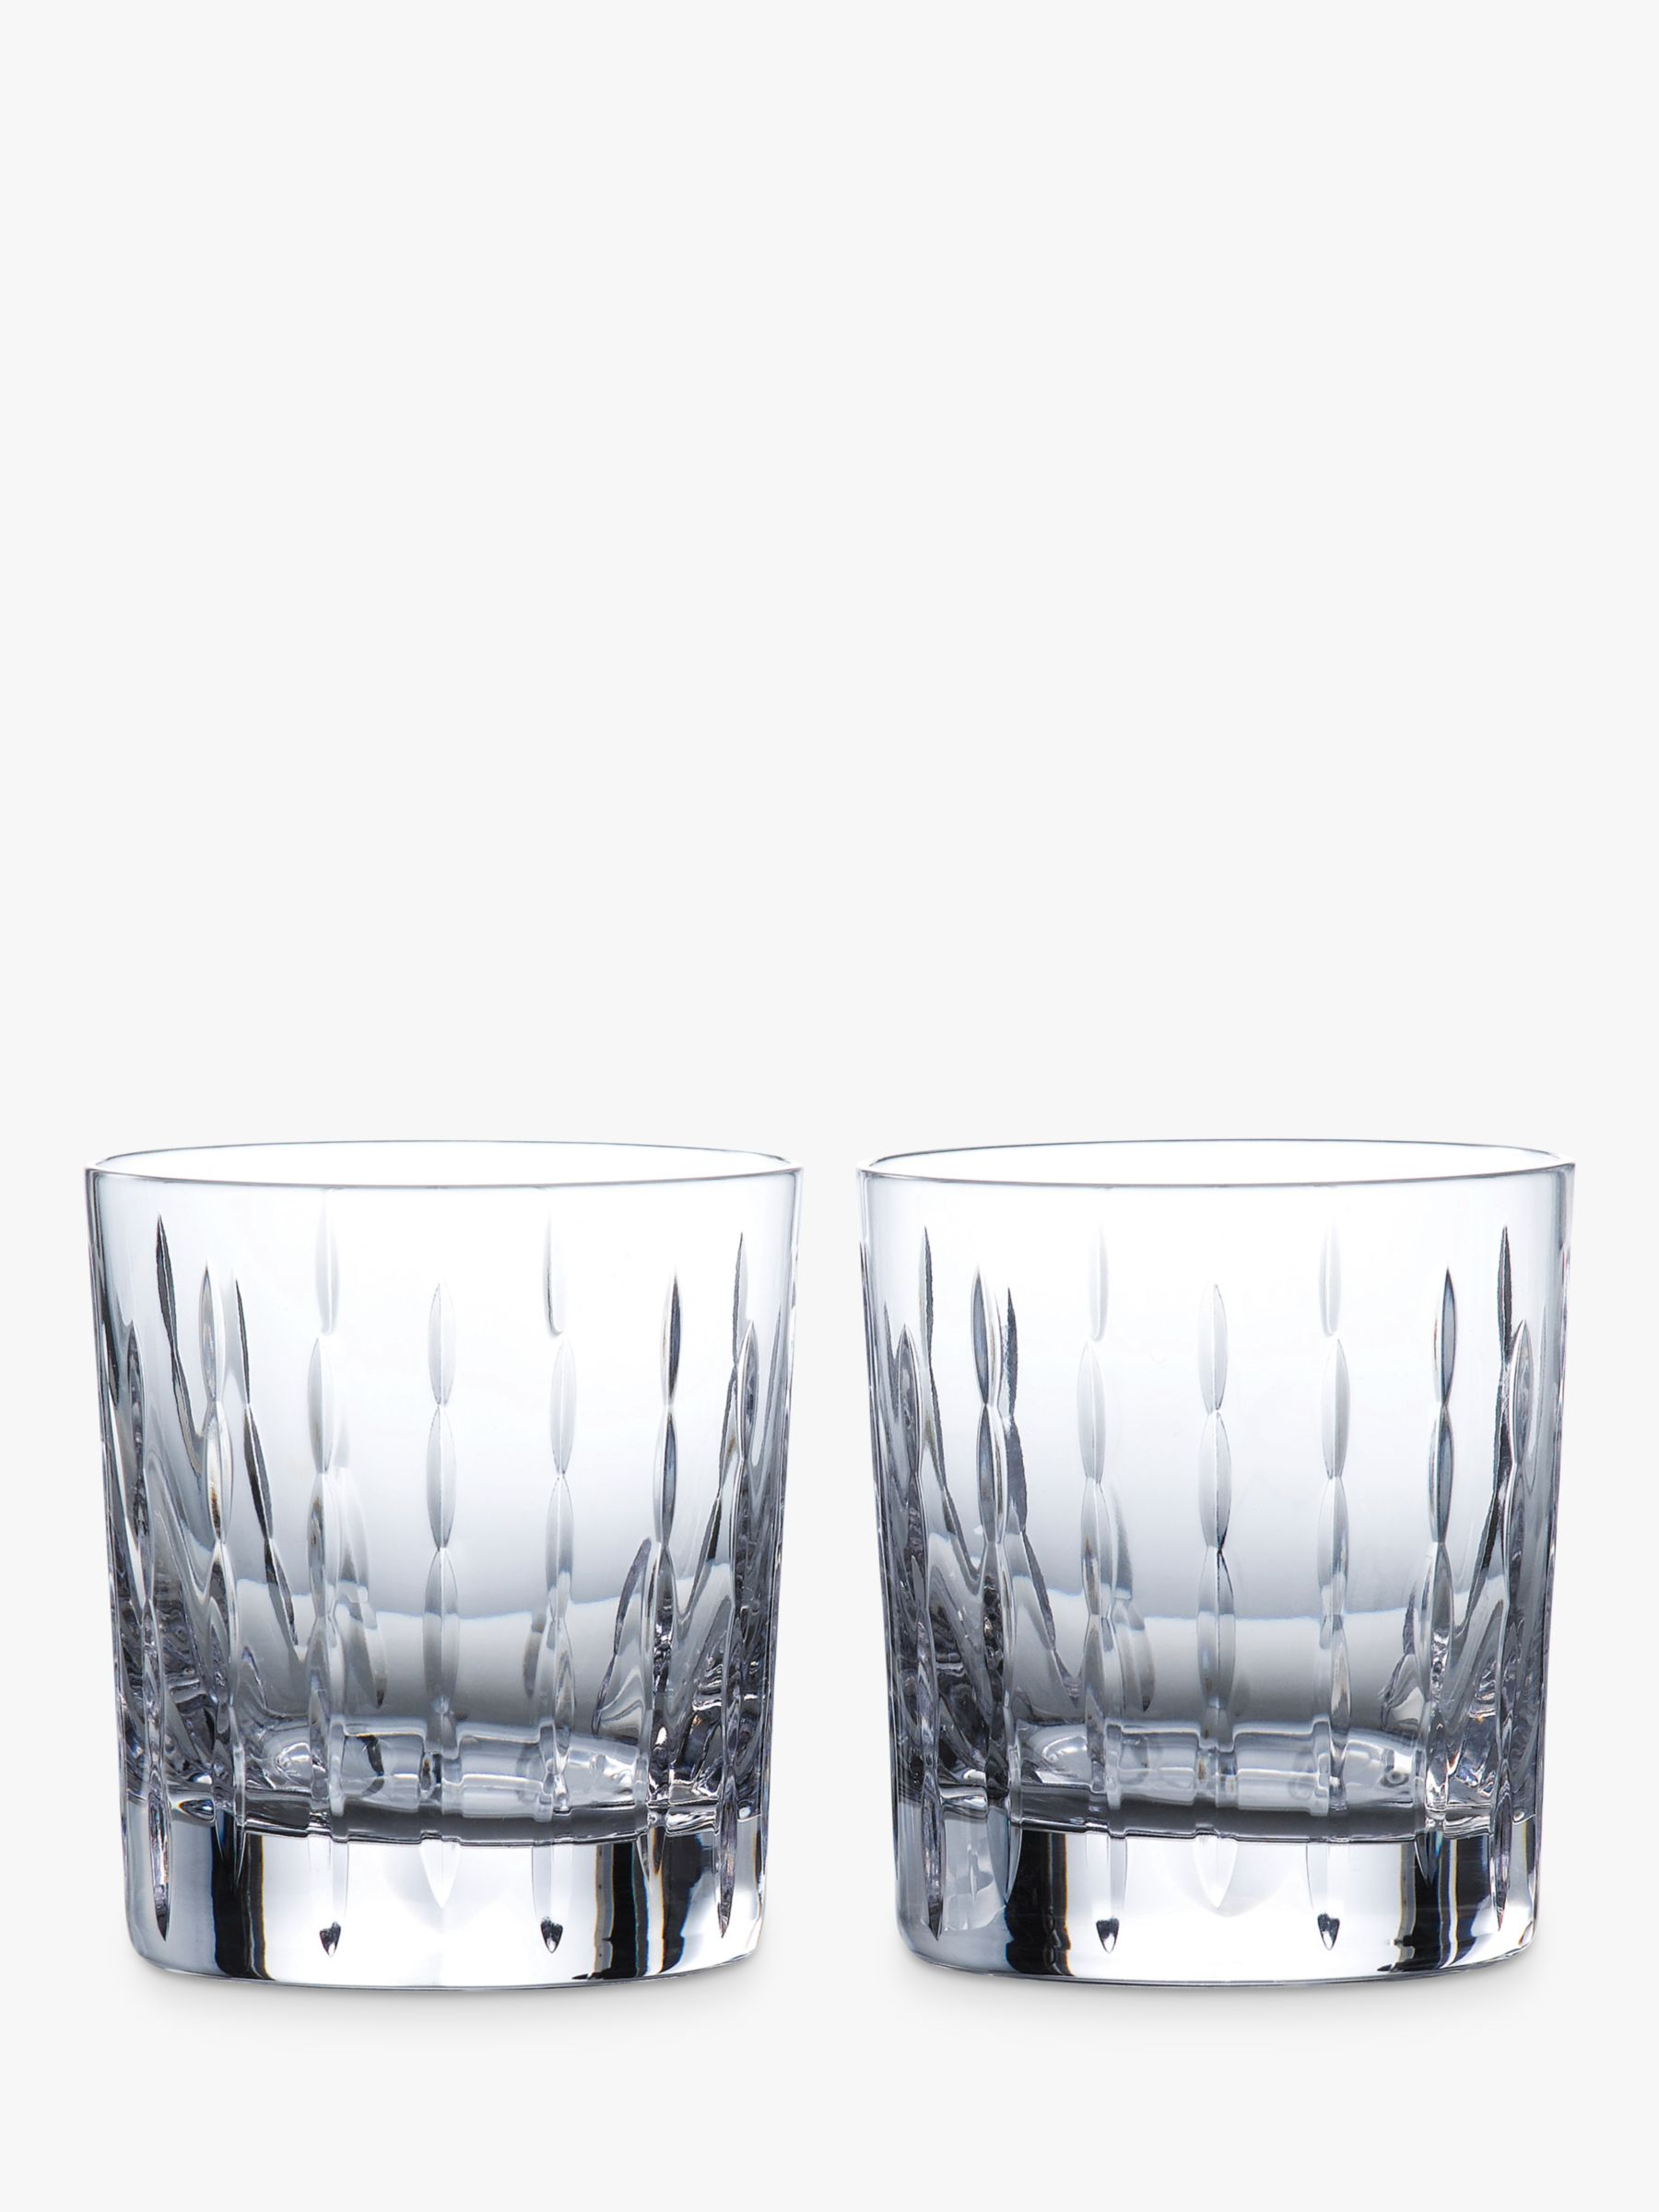 bc0bb9e4889f Royal Doulton R&D Collection Neptune Crystal Cut Glass Tumblers, 290ml, Set  of 2 at John Lewis & Partners